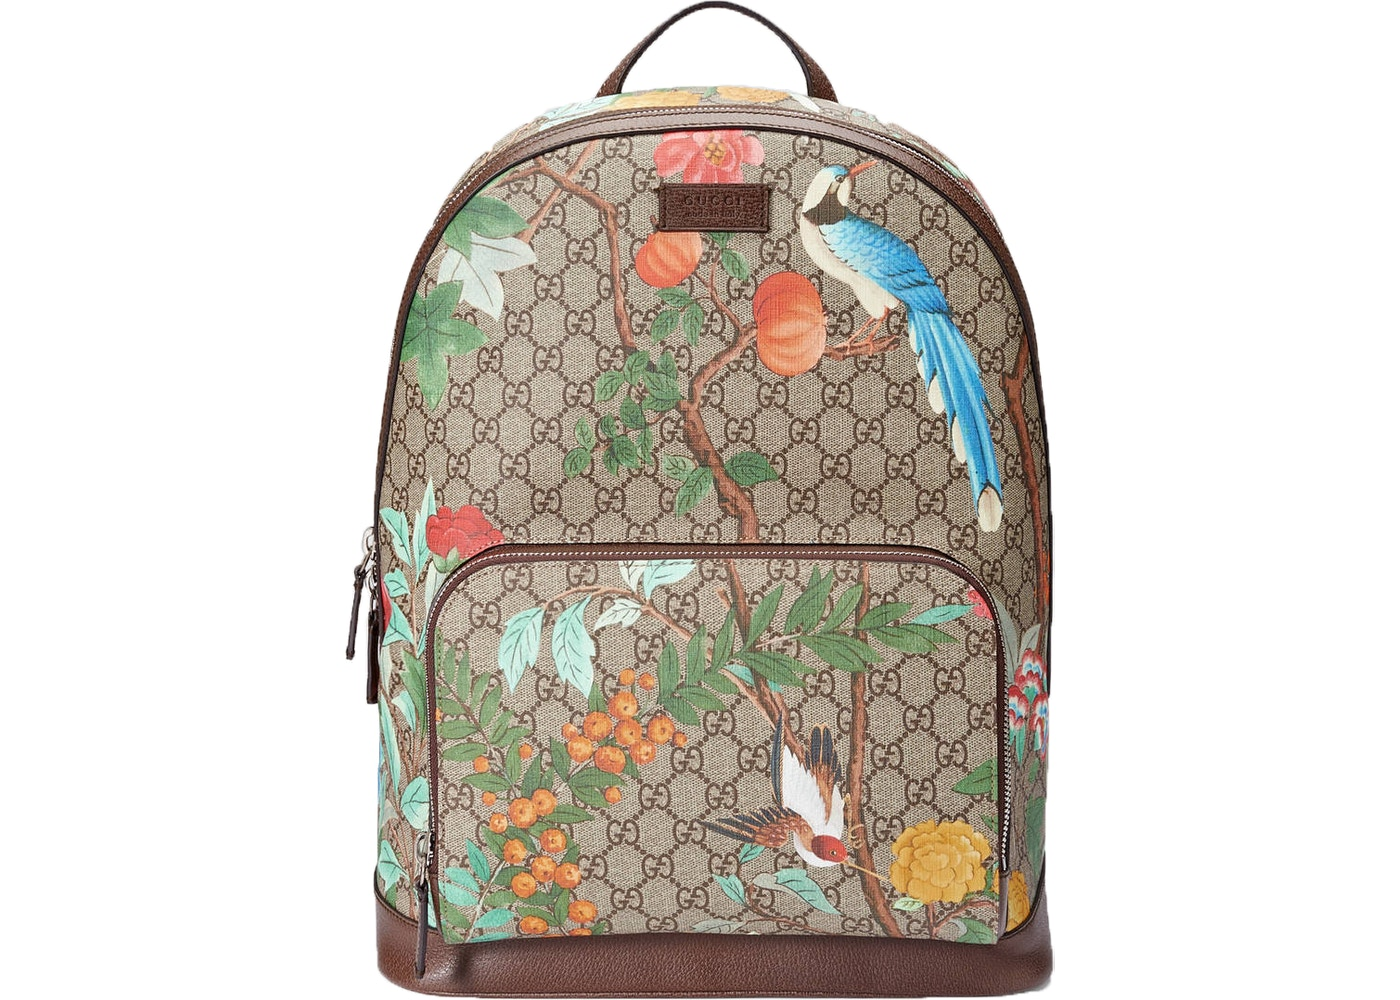 ab4ceac9dce711 Gucci Tian GG Supreme Backpack Monogram GG Floral Pattern Beige ...